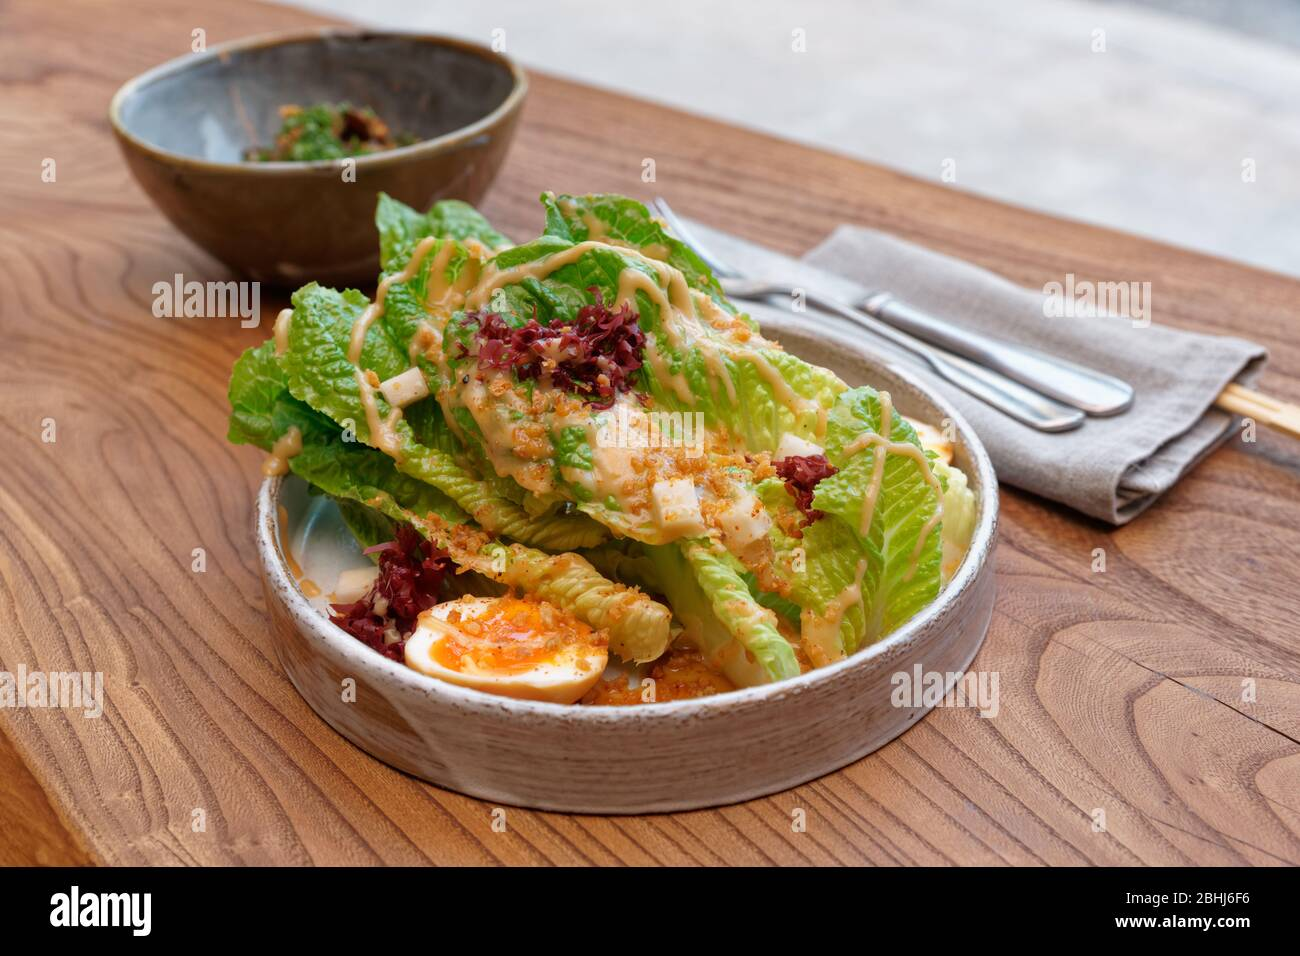 Caesar Salad Cooked In Asian Way Creative Fusion Food On Restaurant Table Stock Photo Alamy